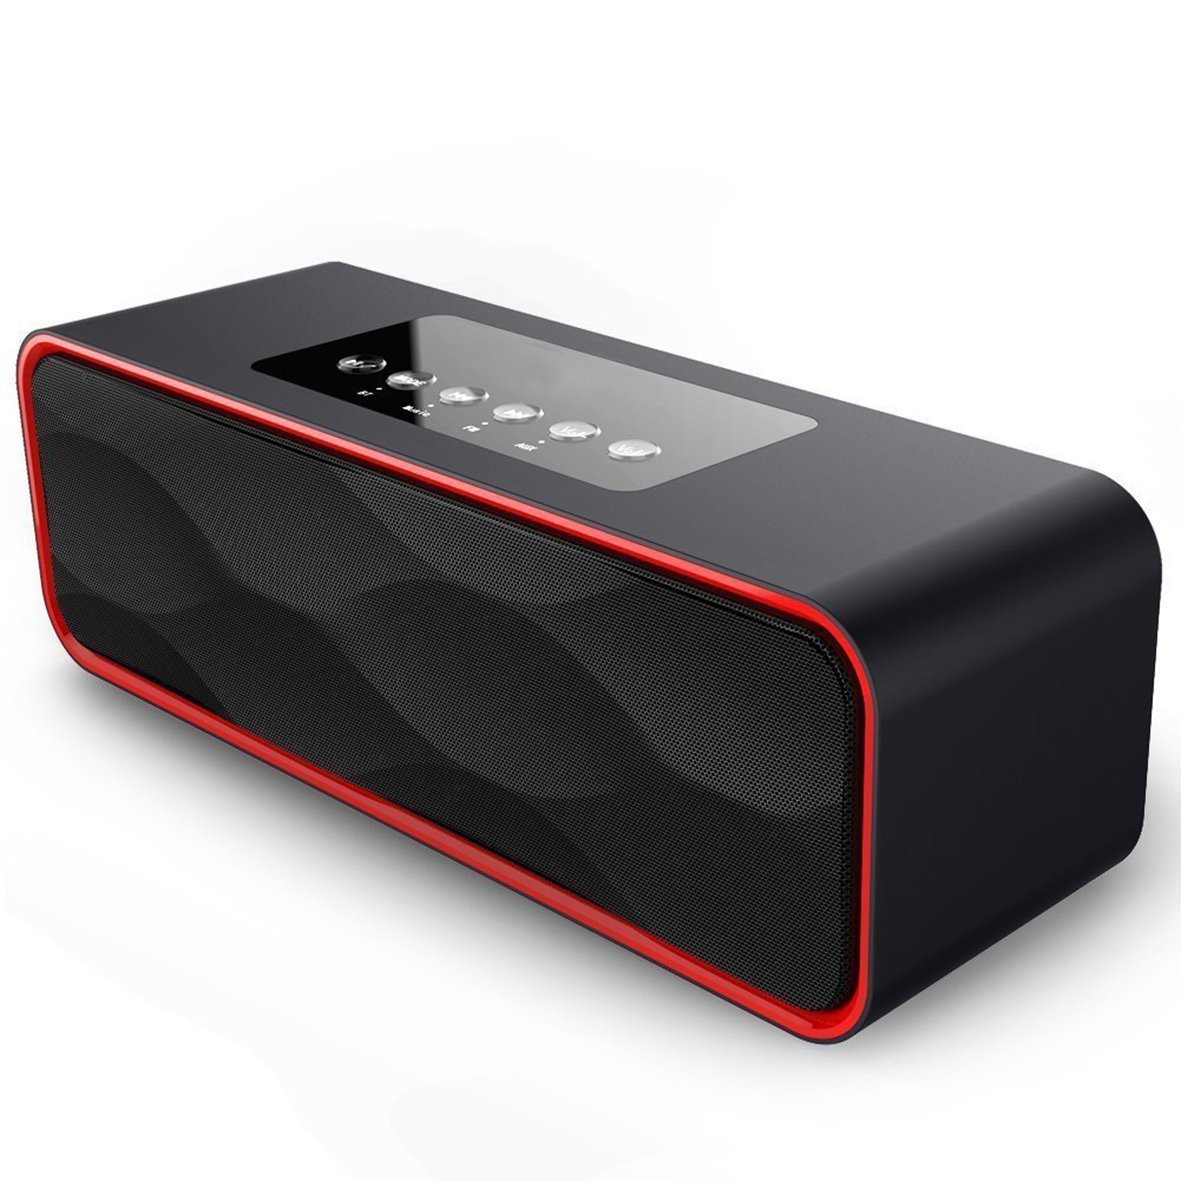 Wireless Portable Bluetooth Speaker 4.0 Build-in Mic, with 10W HD Audio, Enhanced Bass, Radio Support, Hands-free Call and TF Card Slot, Stereo Sound for iPhone, Tablet, Android (DY22 Black)